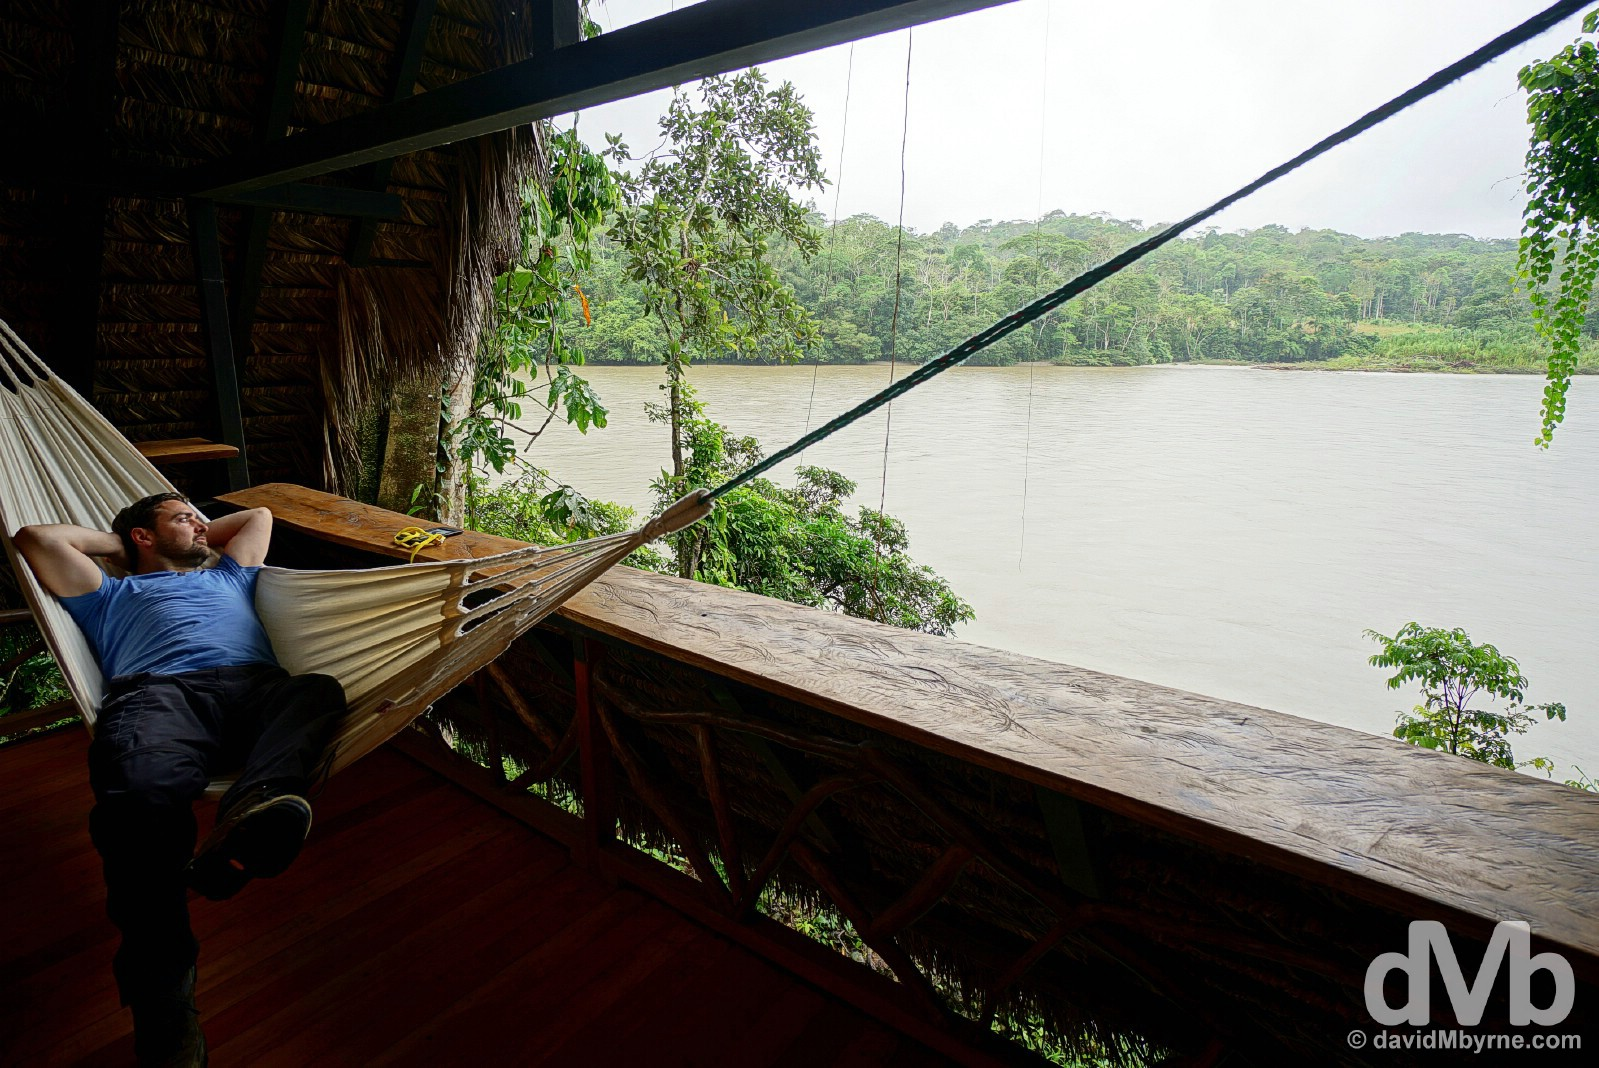 Relaxing overlooking the Napo River from Lodge 13 of Cotococha Amazon Lodge, Ecuador. July 12, 2015.